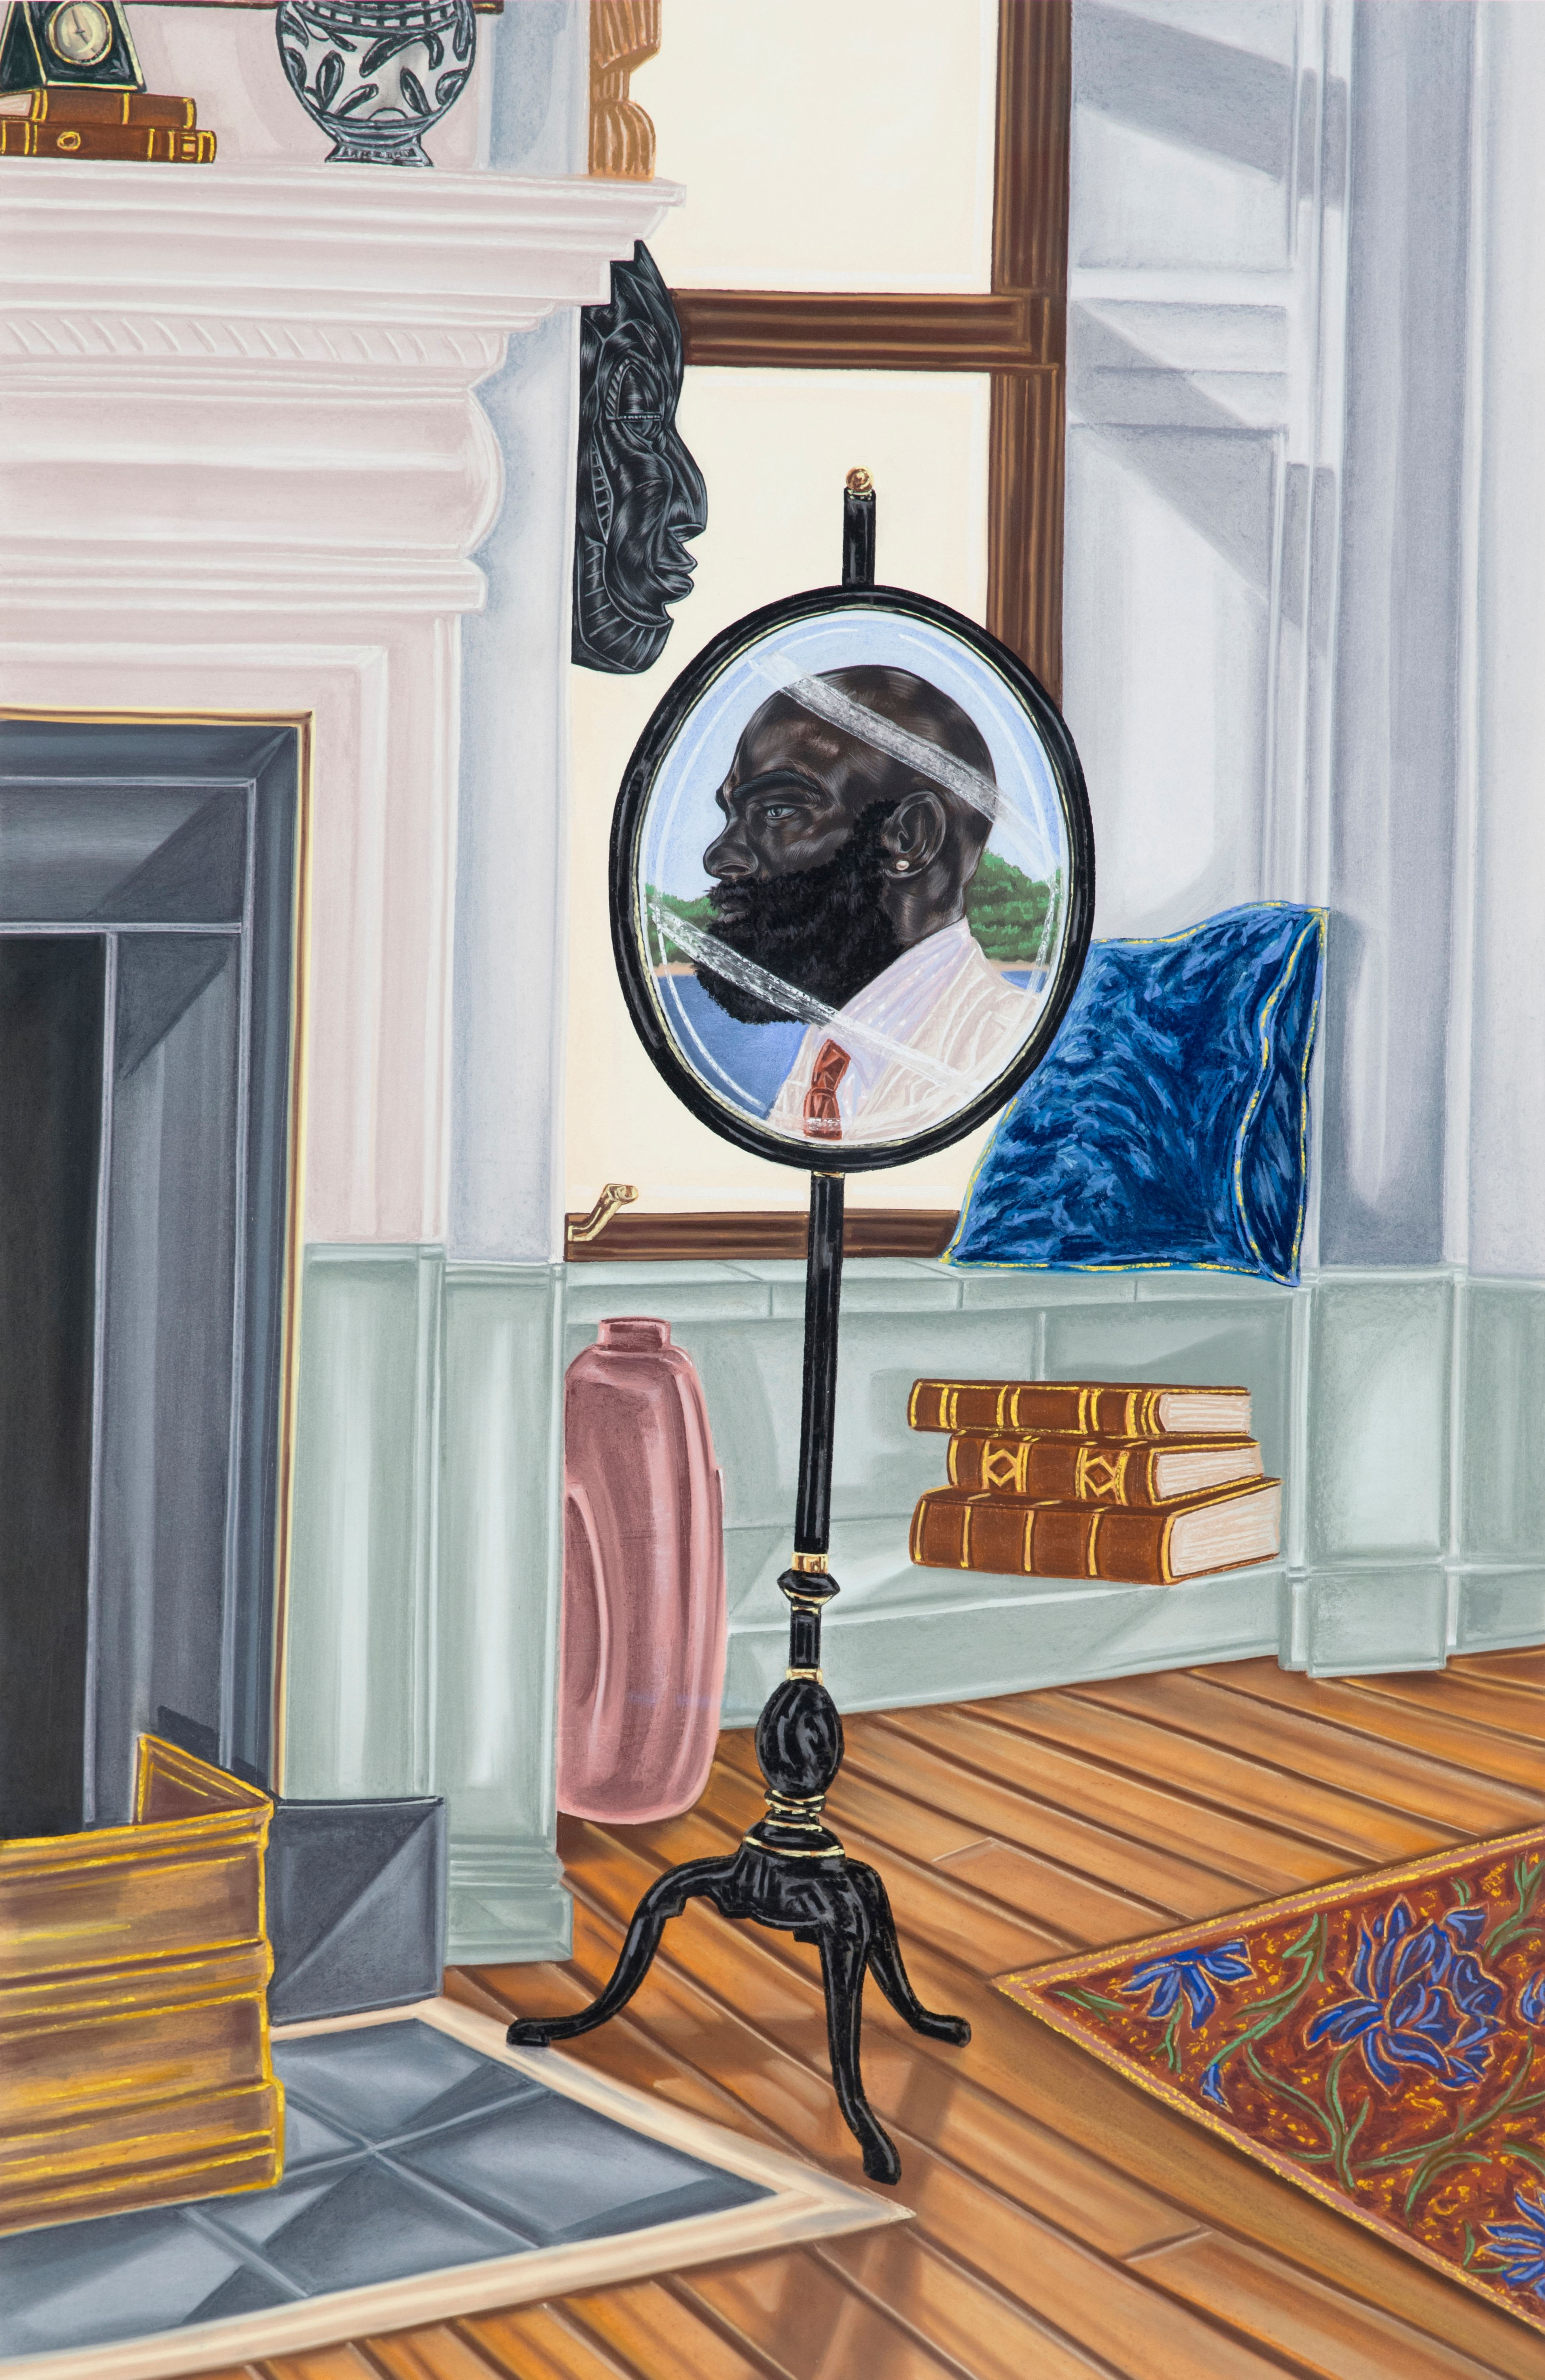 Toyin Ojih Odutola, The Privilege of Placement (2017)